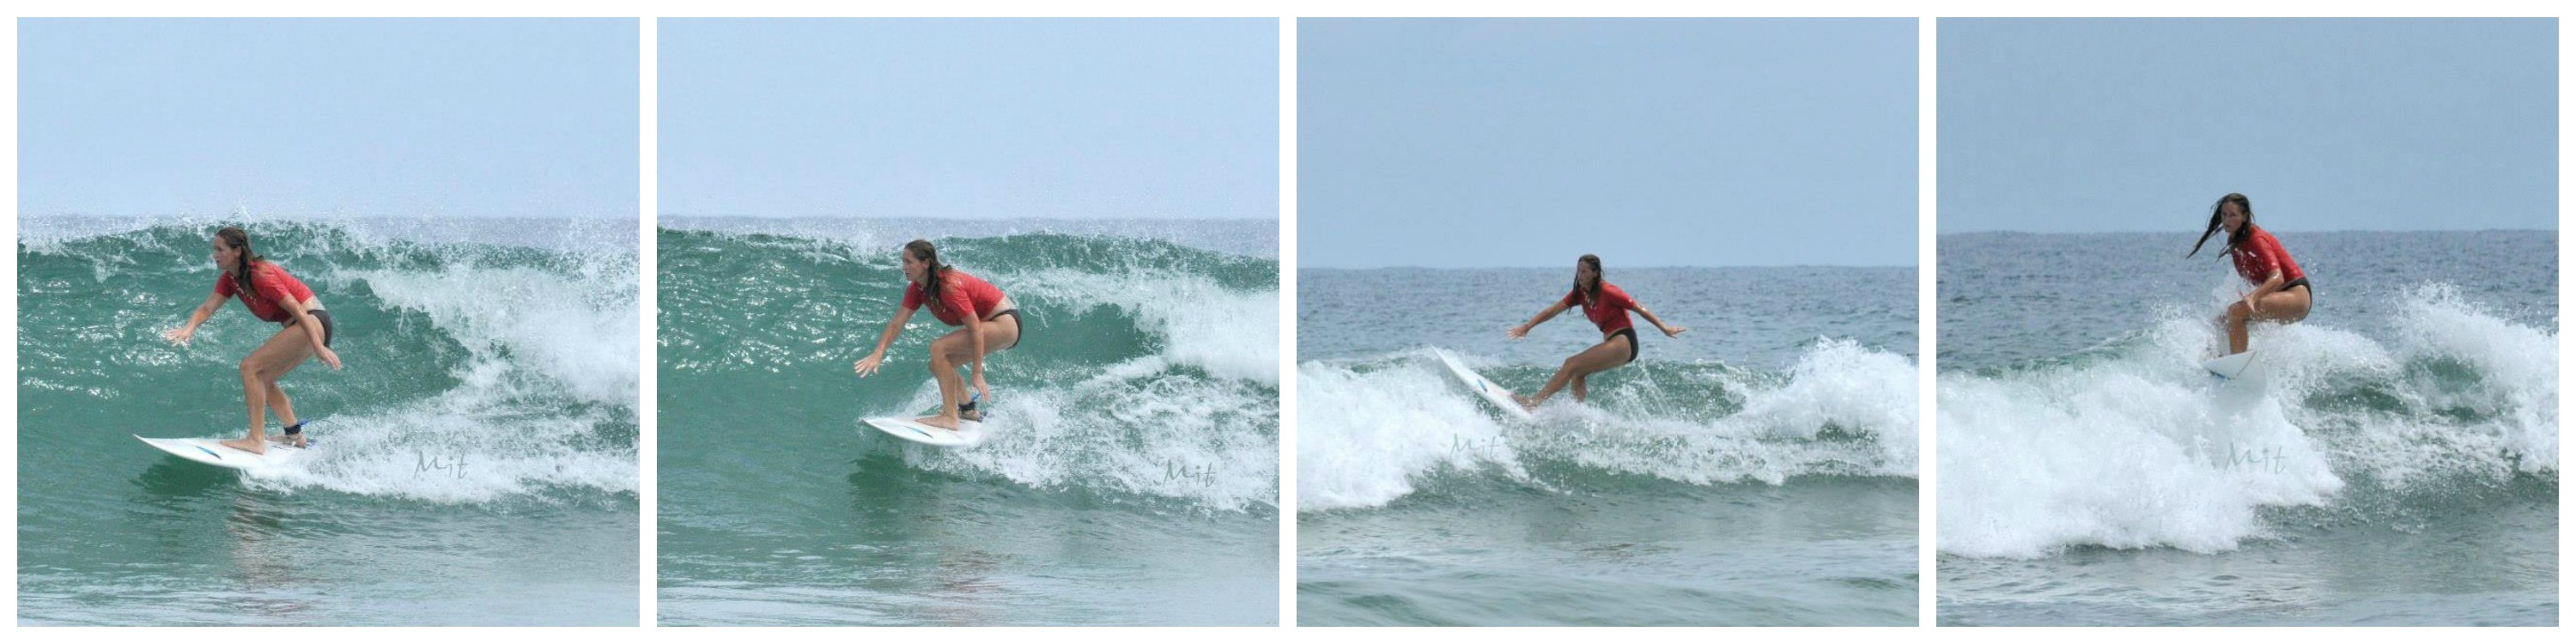 surf2 Collage